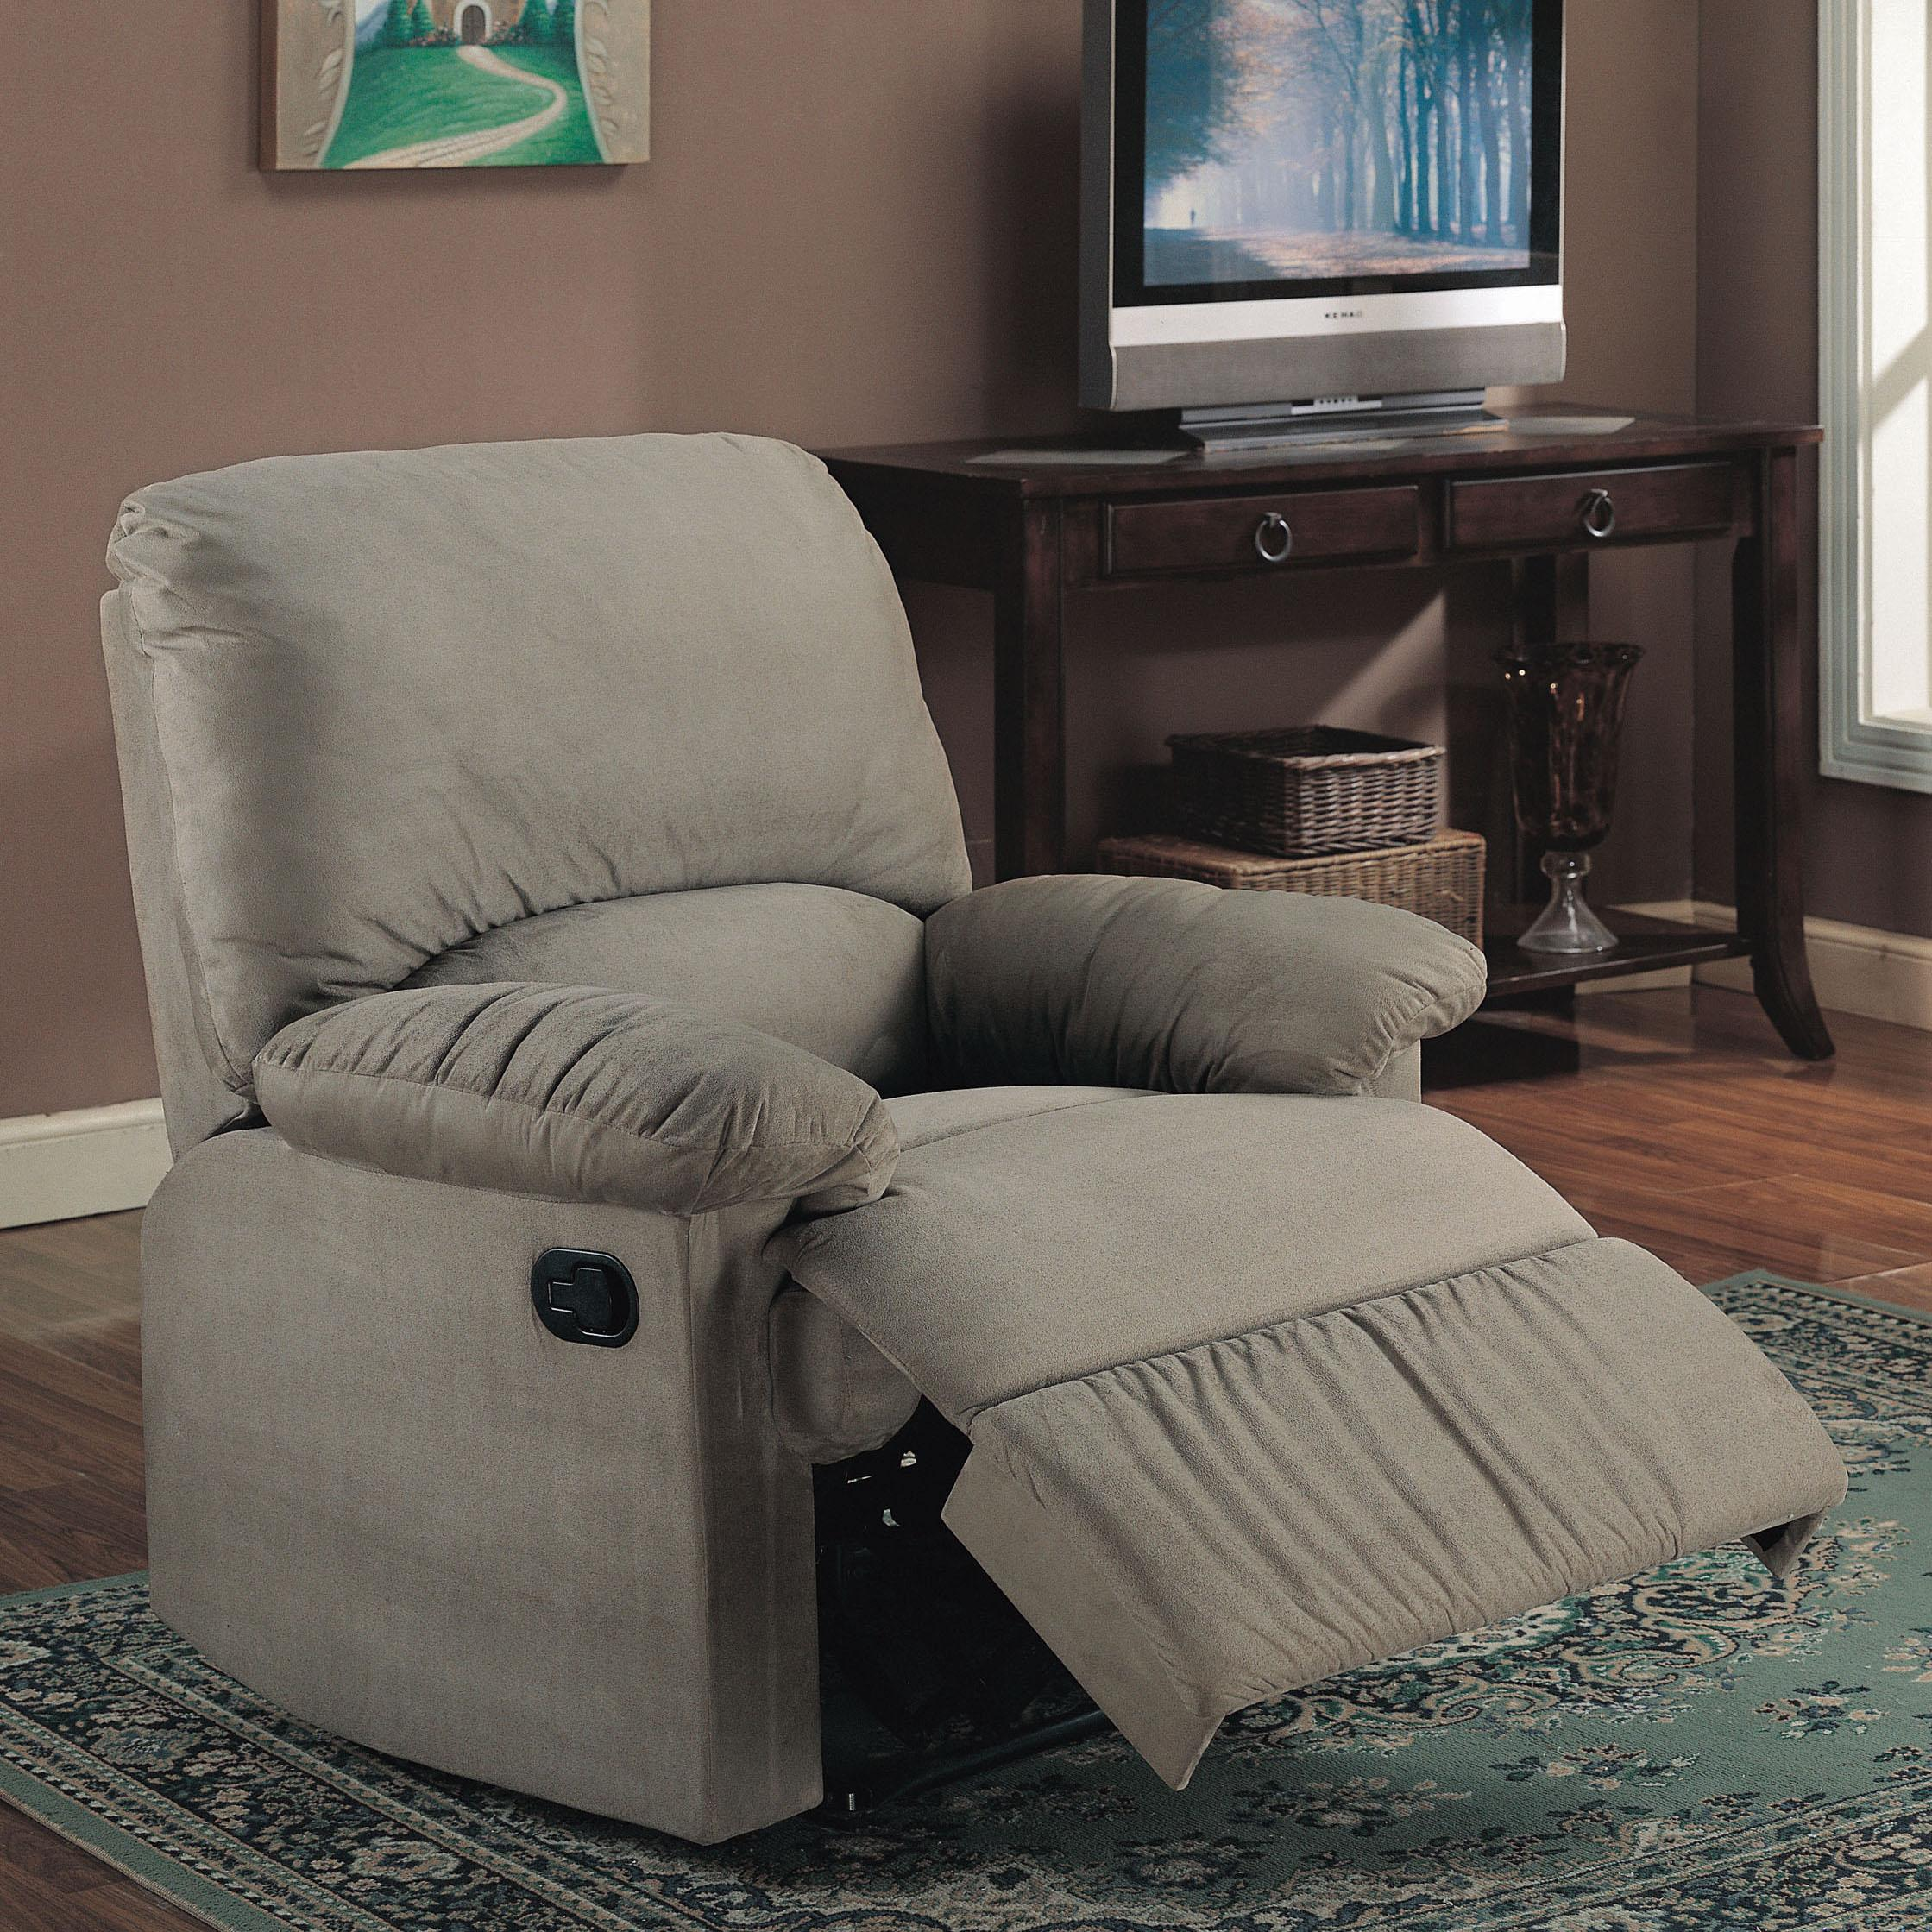 Upholstered Furniture Lancaster Pa Recliners Microfiber Upholstered Glider Recliner Quality